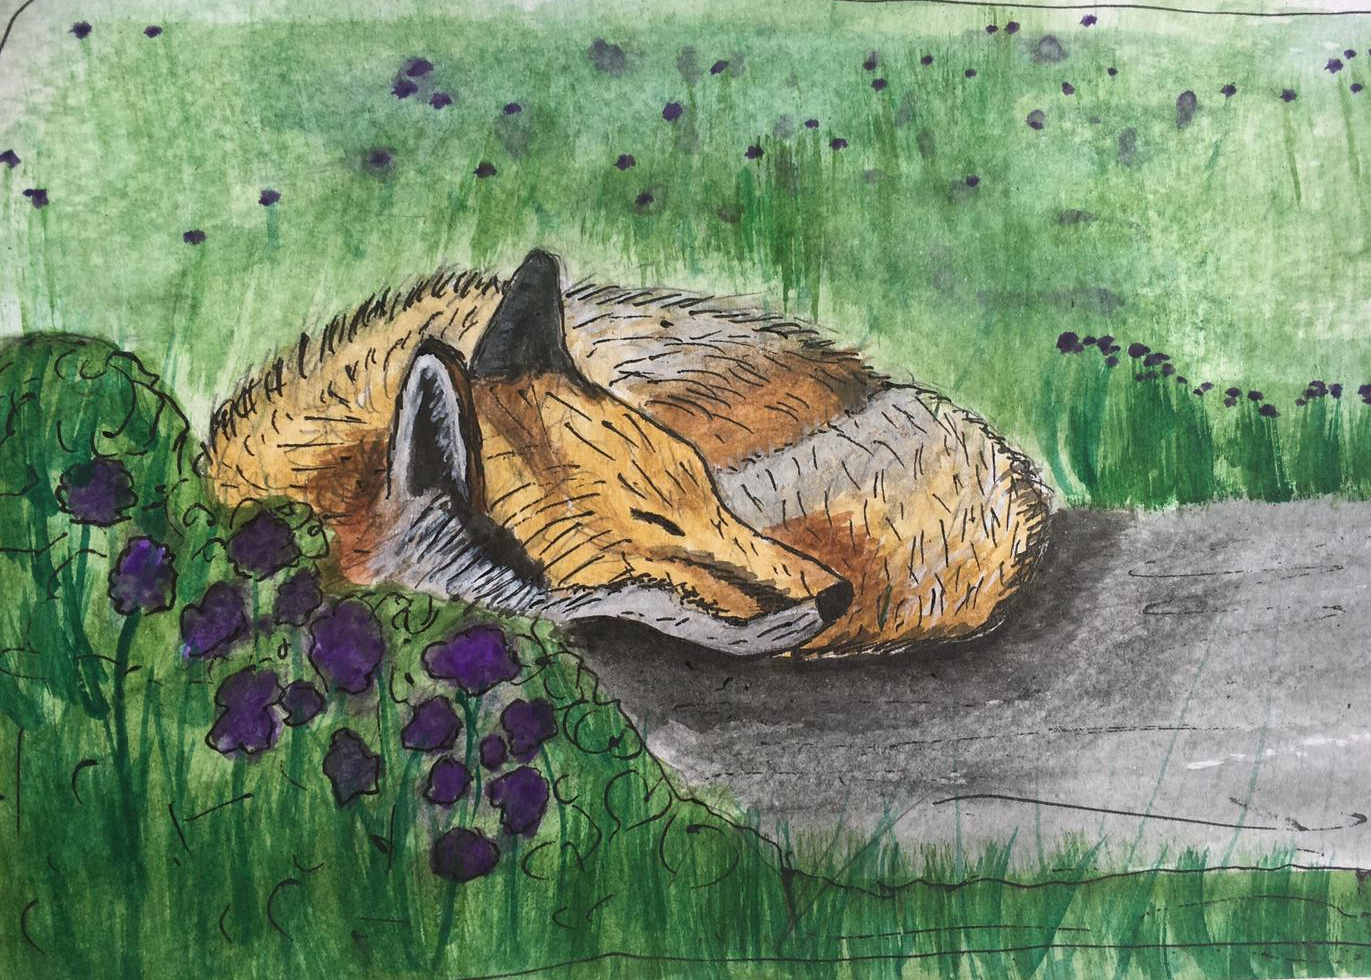 Fox dozing